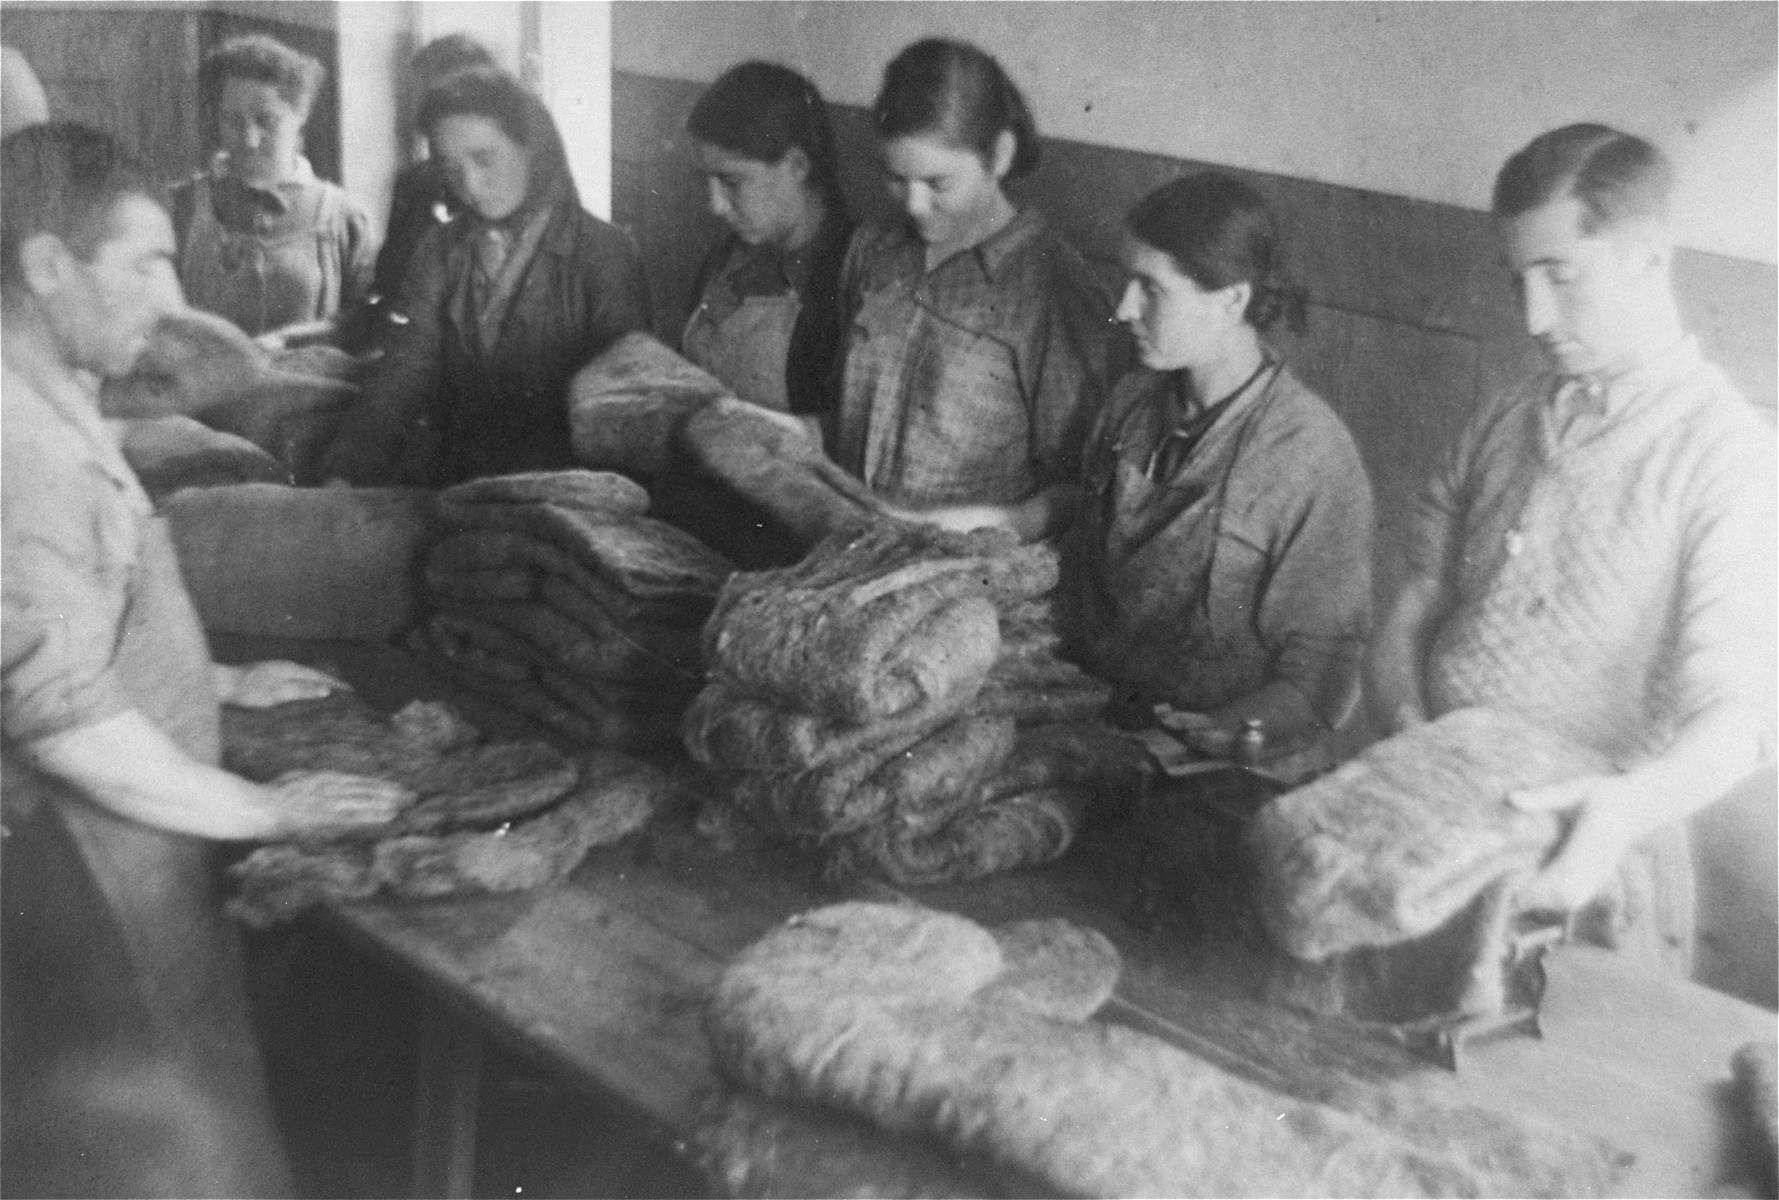 Jewish men and women make felt boots in a workshop in the Glubokoye ghetto.